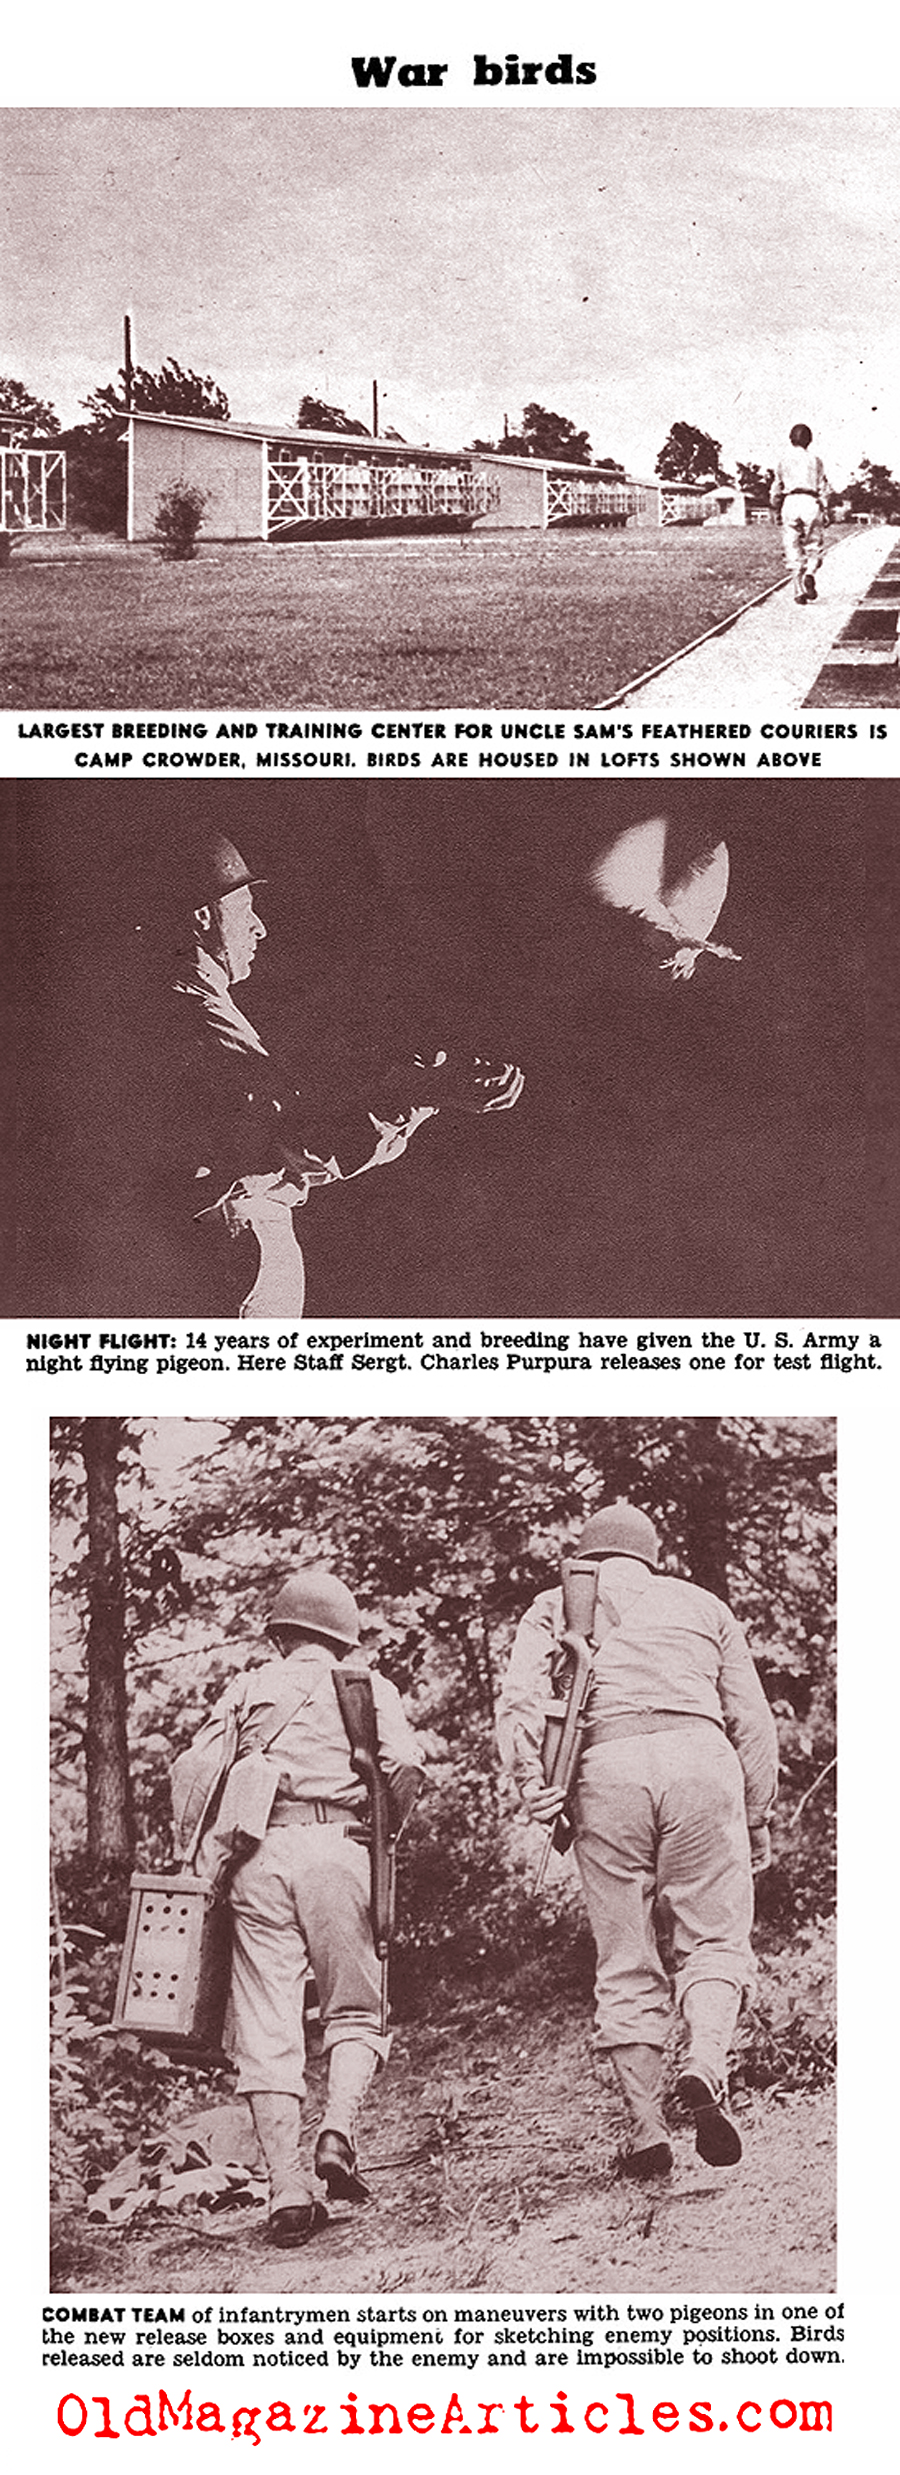 U.S. Army Carrier Pigeons of World War II (Click Magazine, 1943)